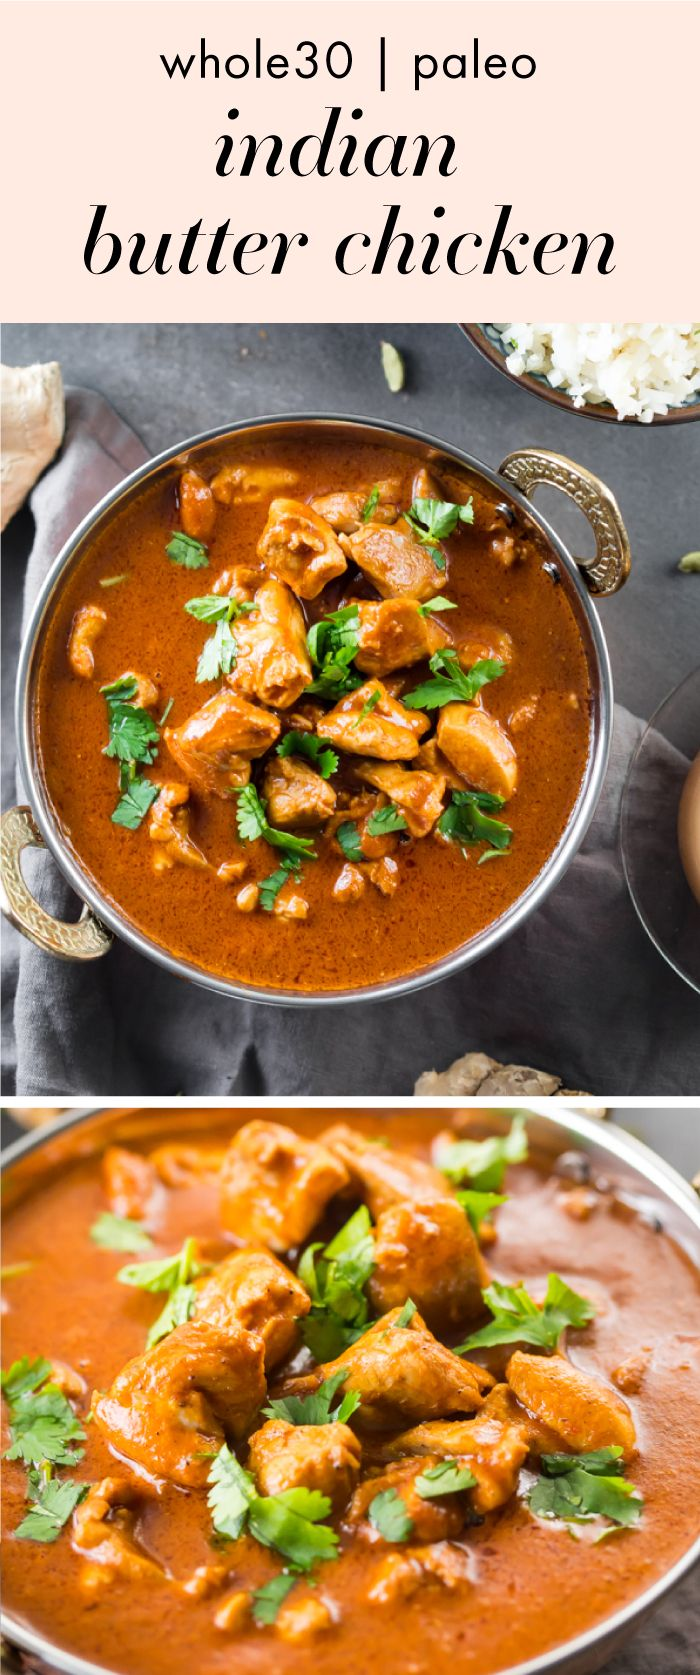 This Whole30 Indian butter chicken is super flavorful and comes together quite quickly and easily. One of my favorite Whole30 Indian recipes, this Whole30 Indian butter chicken is a family favorite that even my toddler will eat! Whole30 Indian recipes are a great way to break up the Whole30 heaviness, and you'll love this Whole30 Indian butter chicken for sure. #whole30 #paleo #paleorecipes #whole30recipes #indian #glutenfree #indianrecipes #indianfood